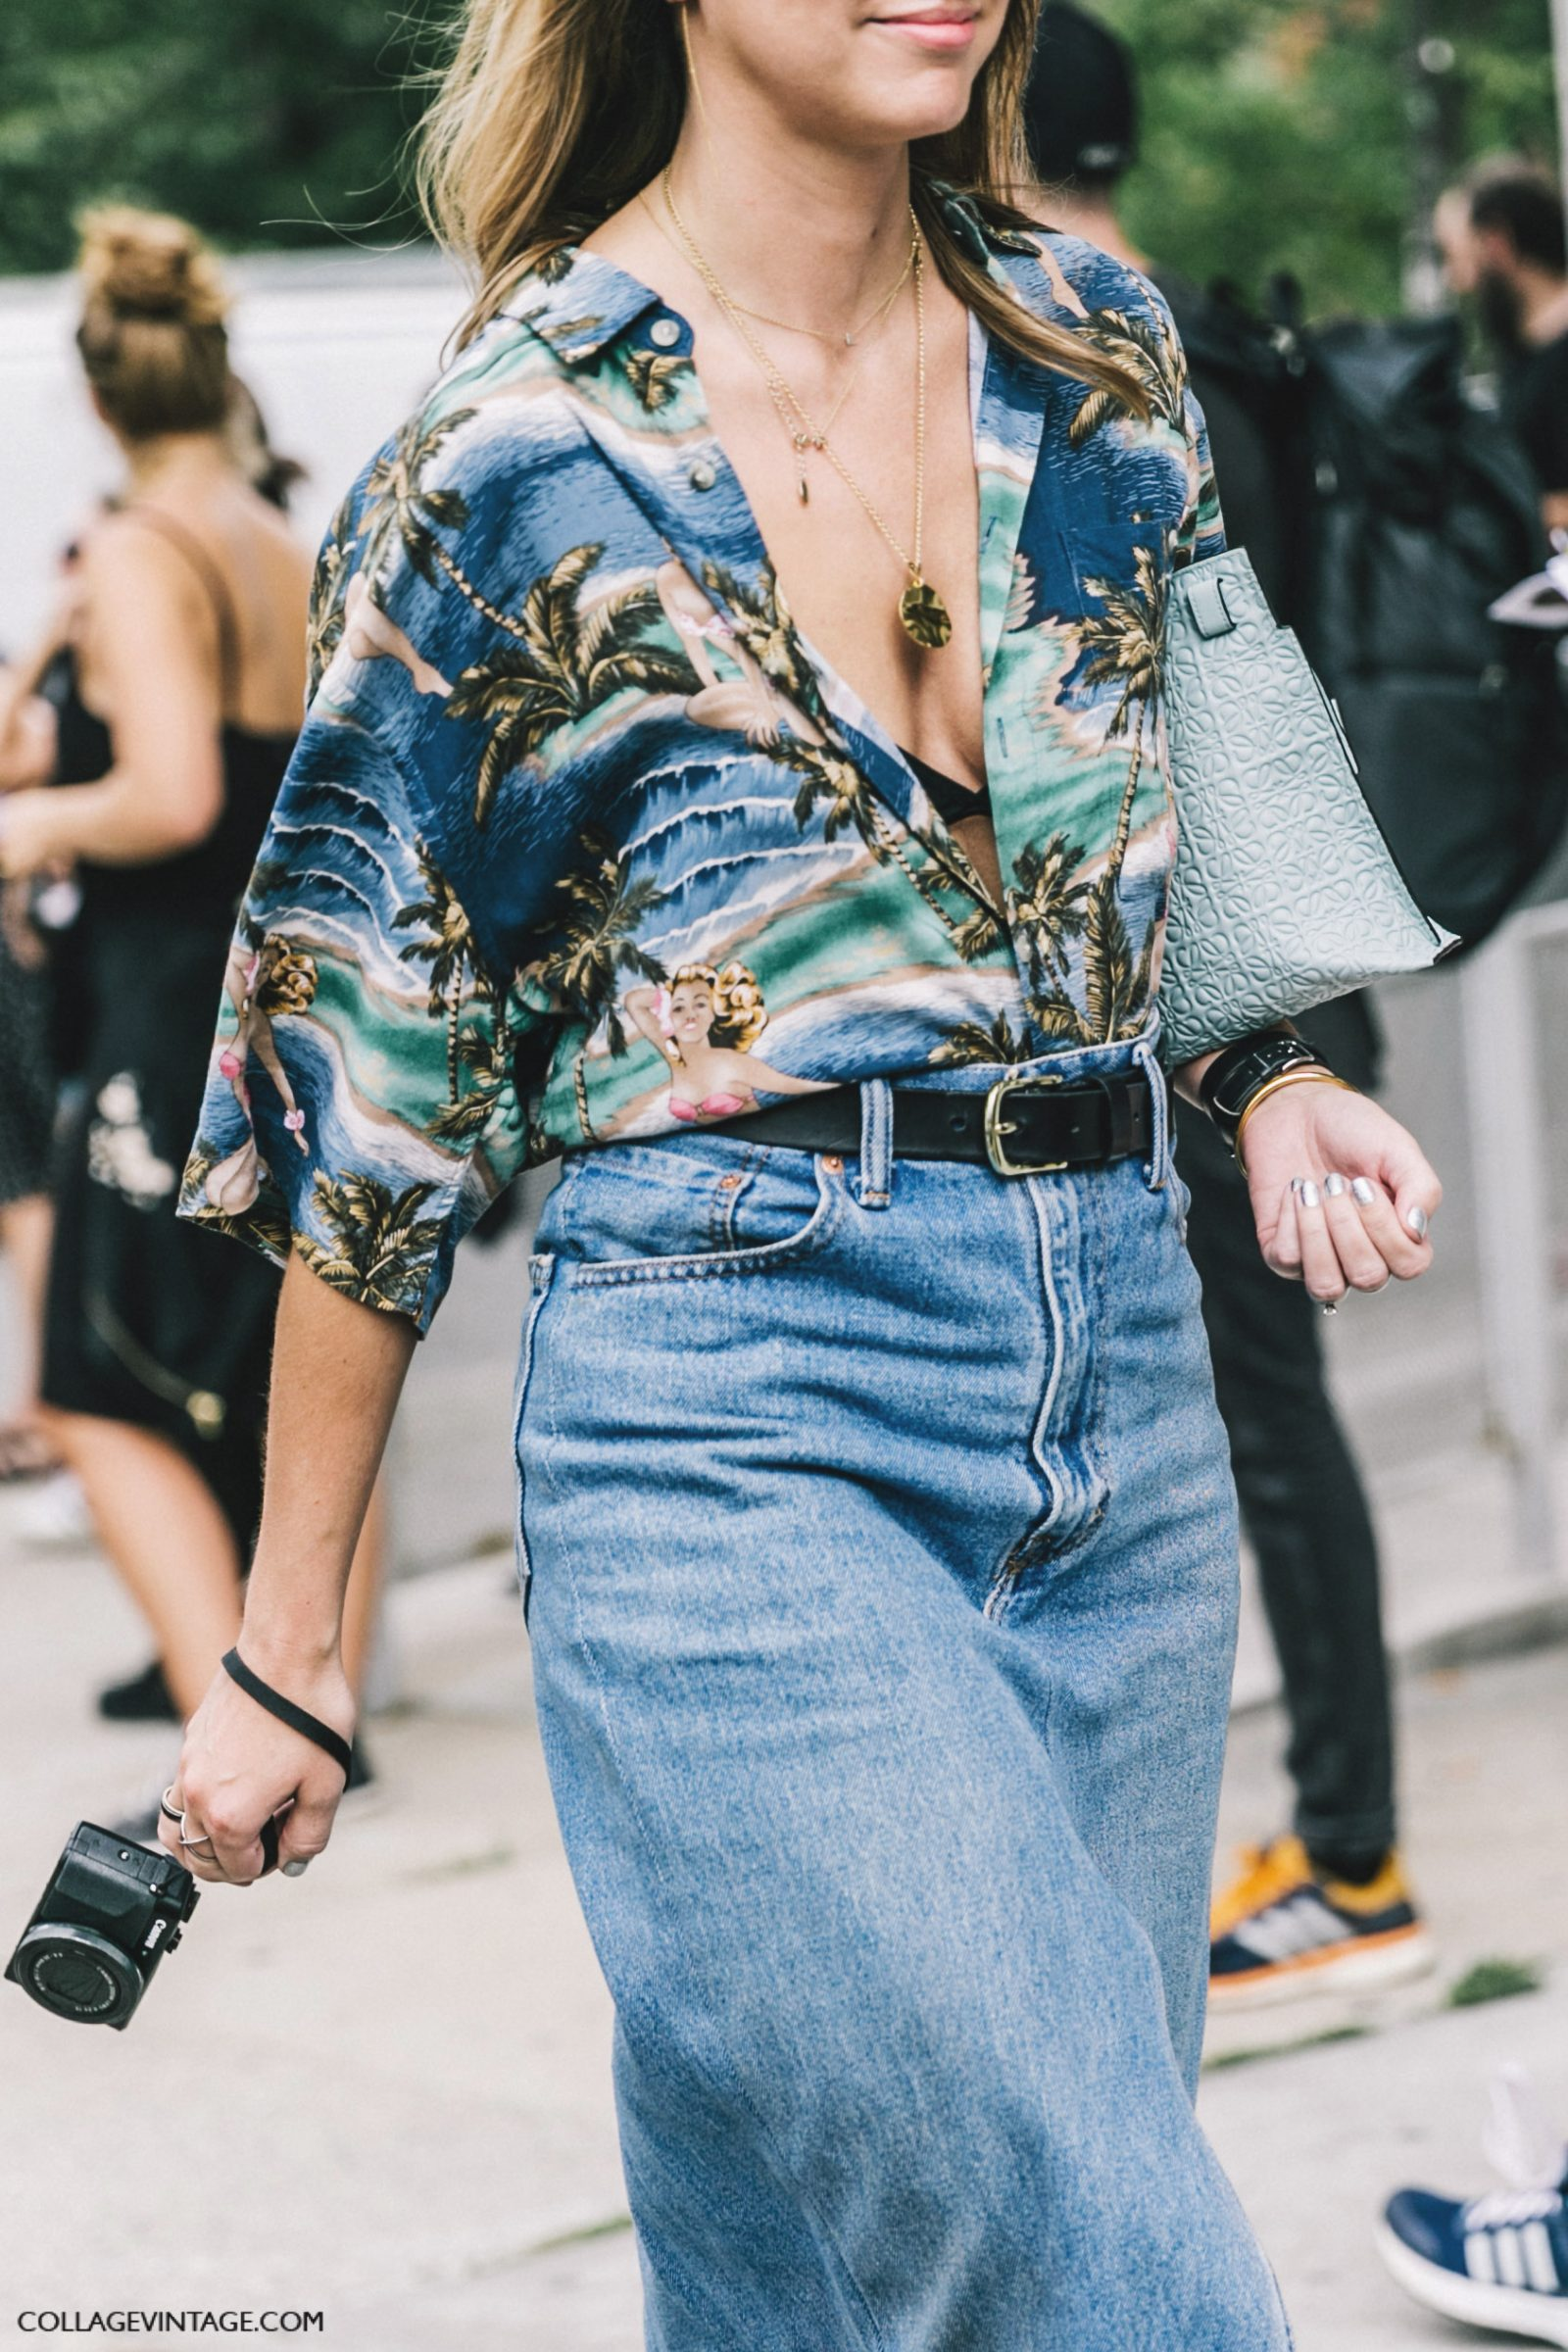 nyfw-new_york_fashion_week_ss17-street_style-outfits-collage_vintage-denim_skirt-tropical_shirt-1